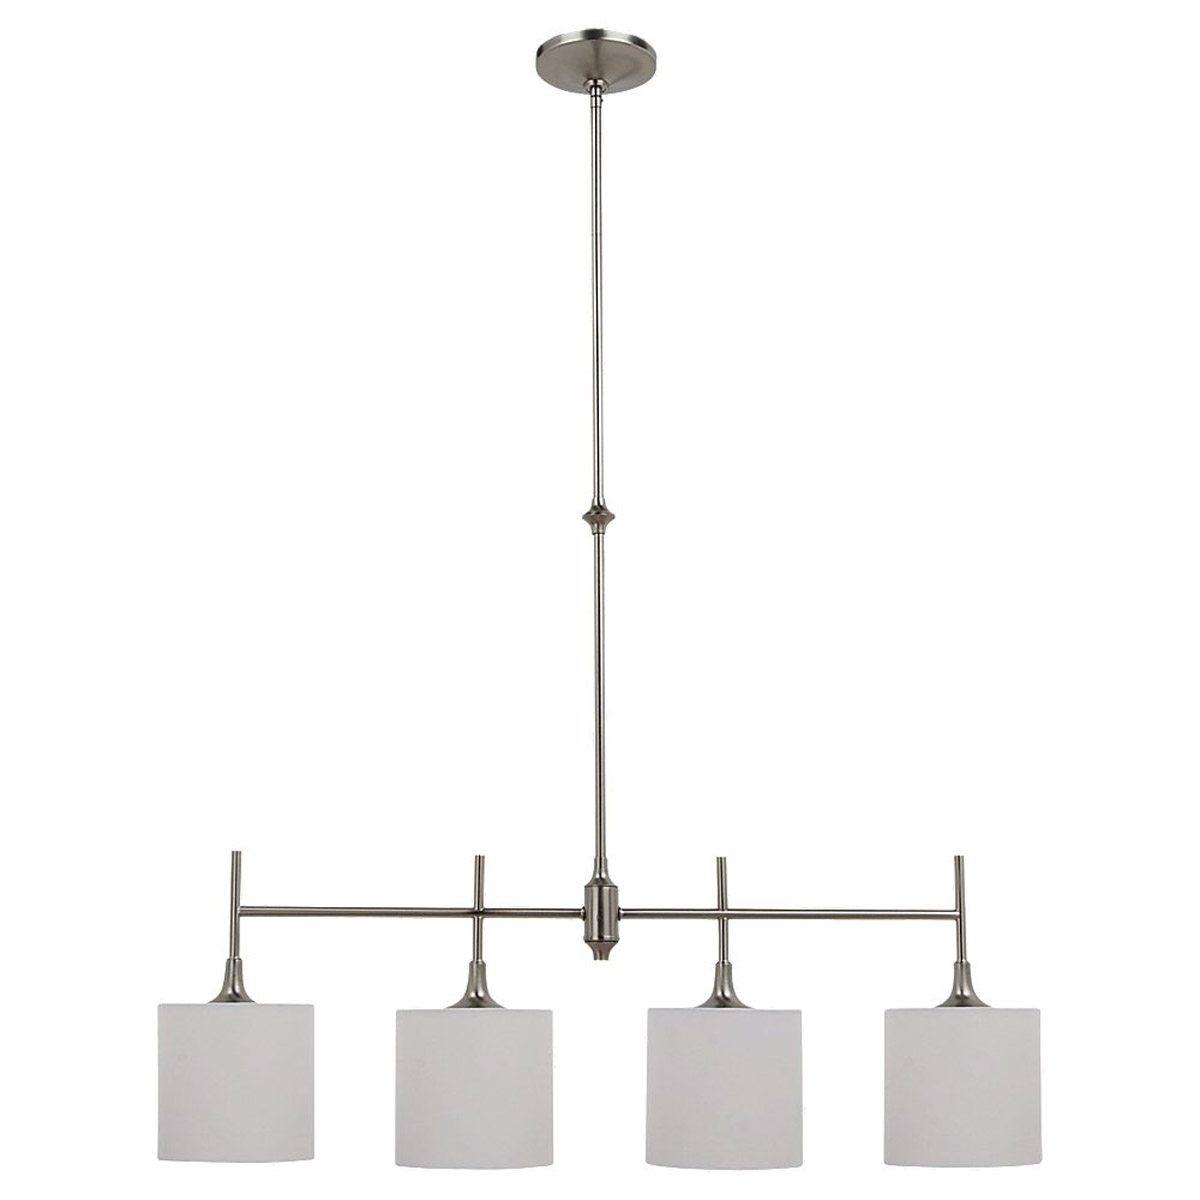 Sea Gull Lighting Stirling 4 Light Island Pendant in Brushed Nickel 66952-962